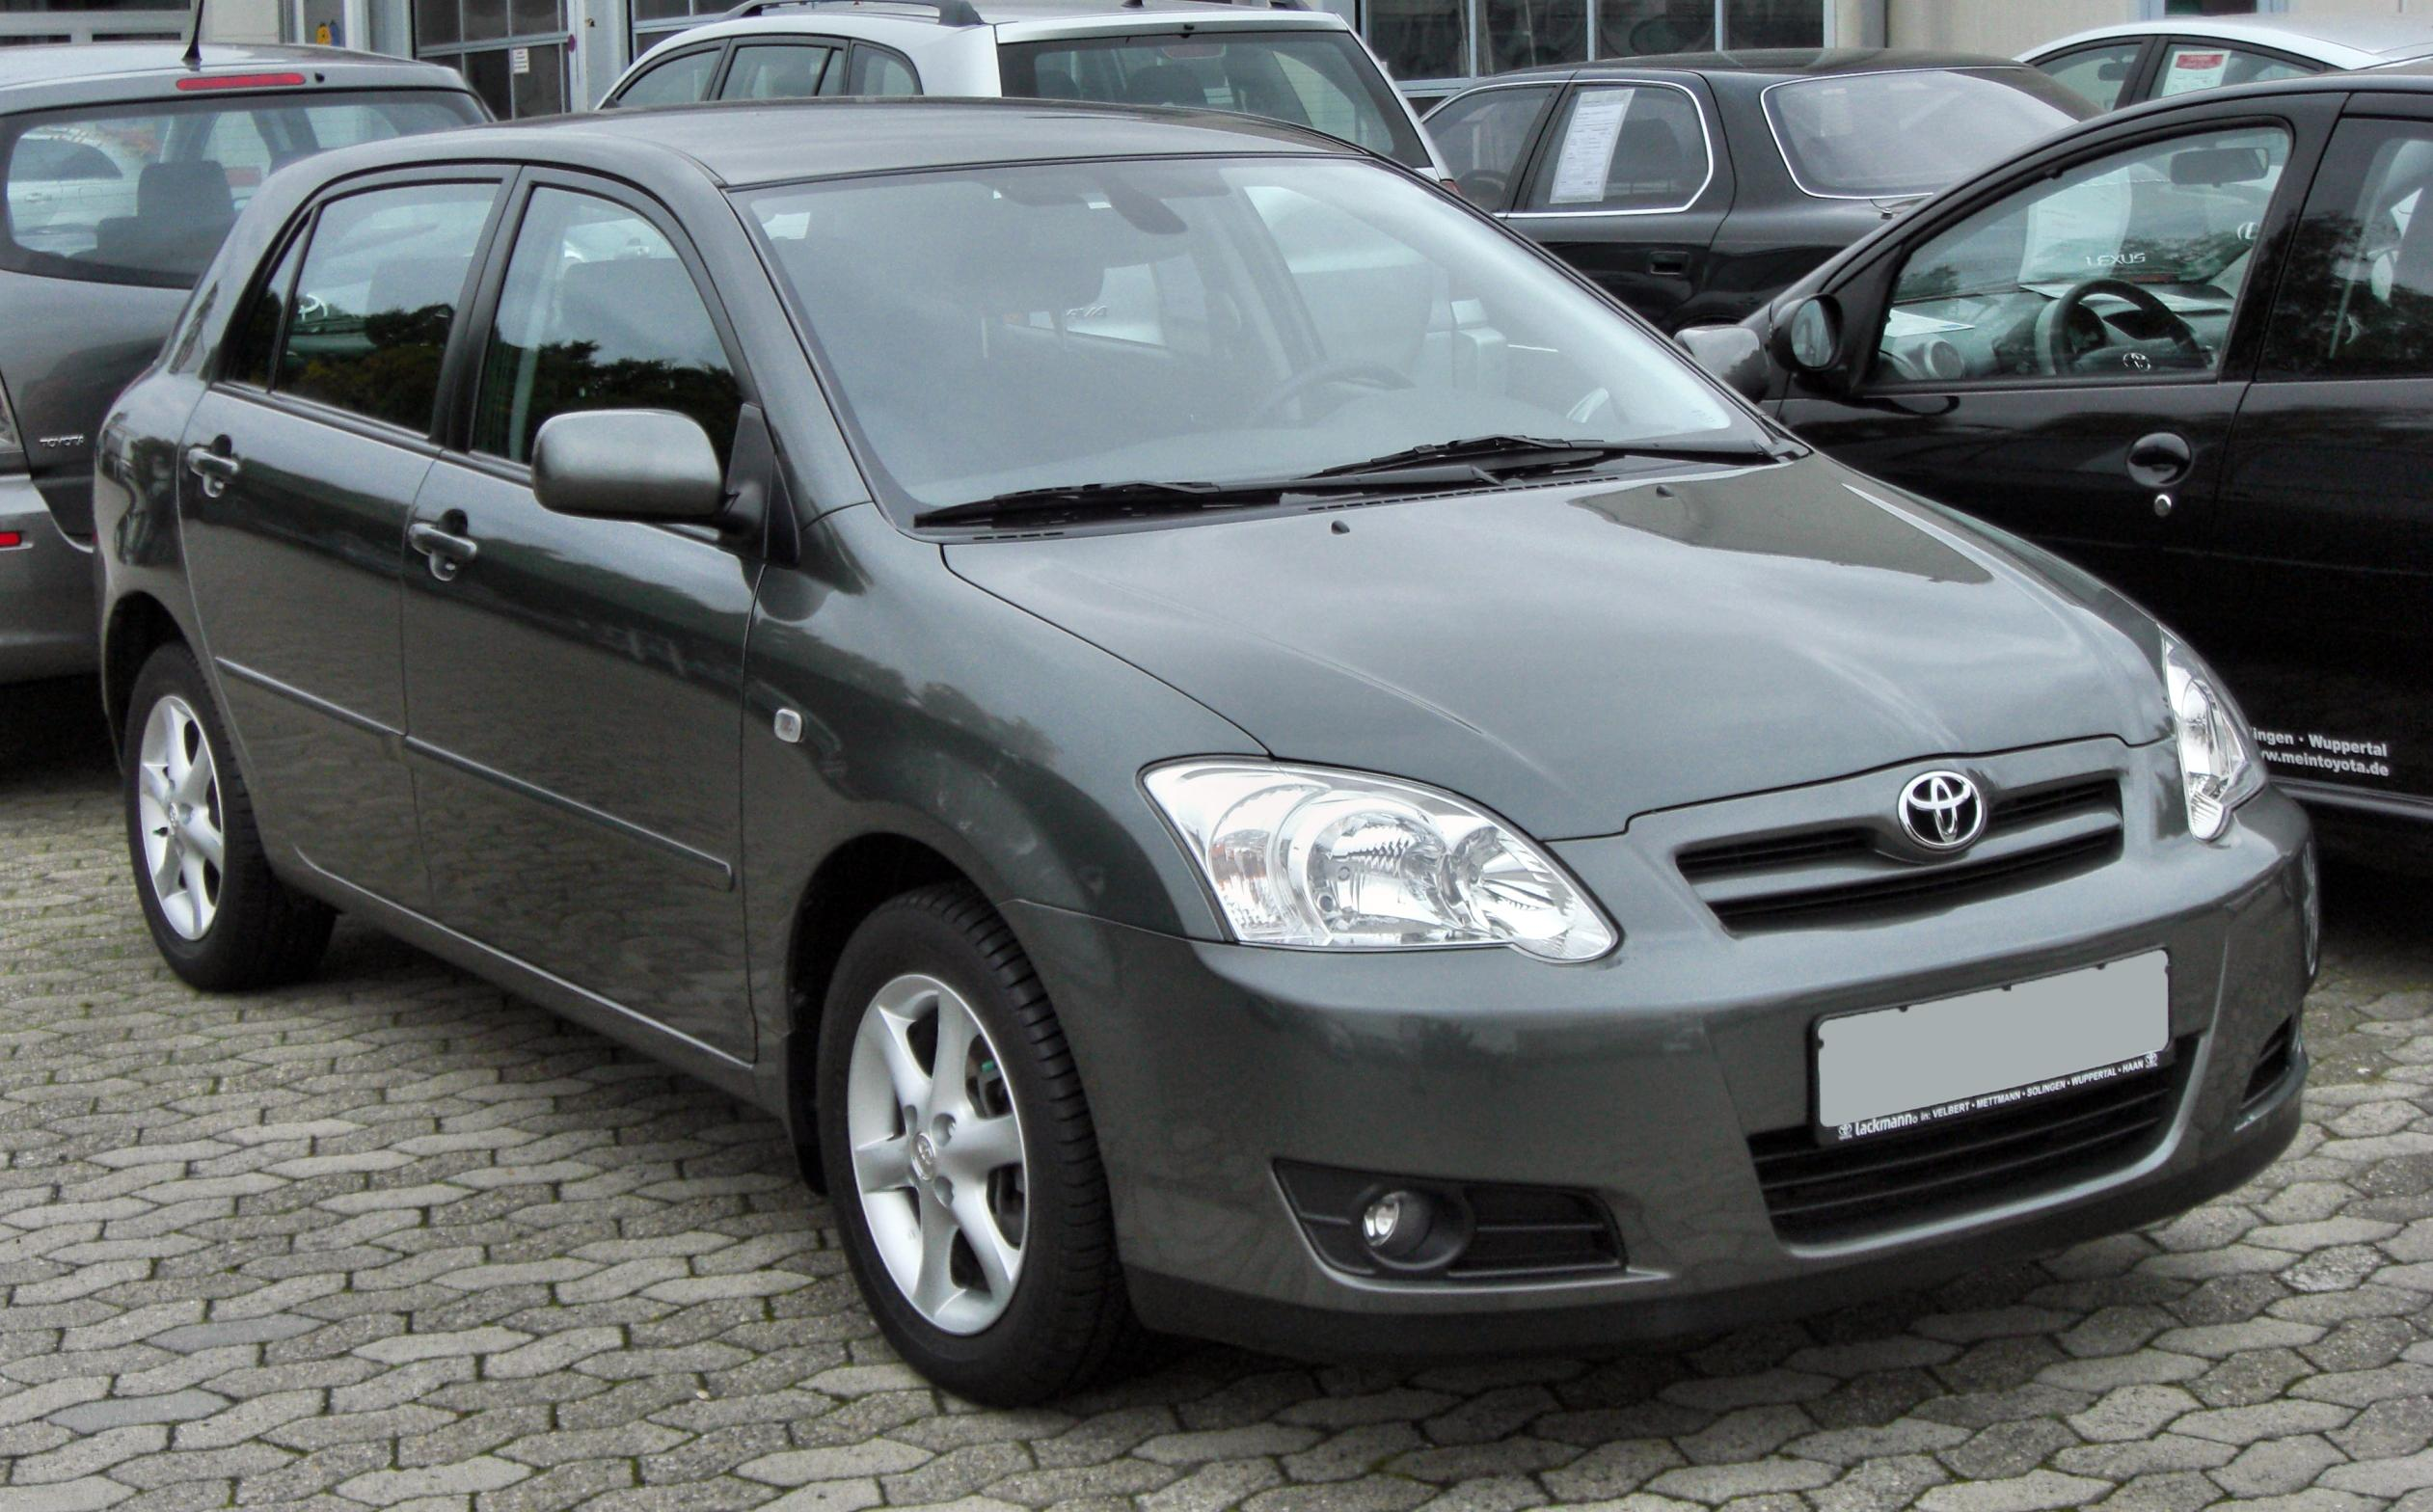 1998 Toyota Corolla compact (e11) – pictures, information and specs